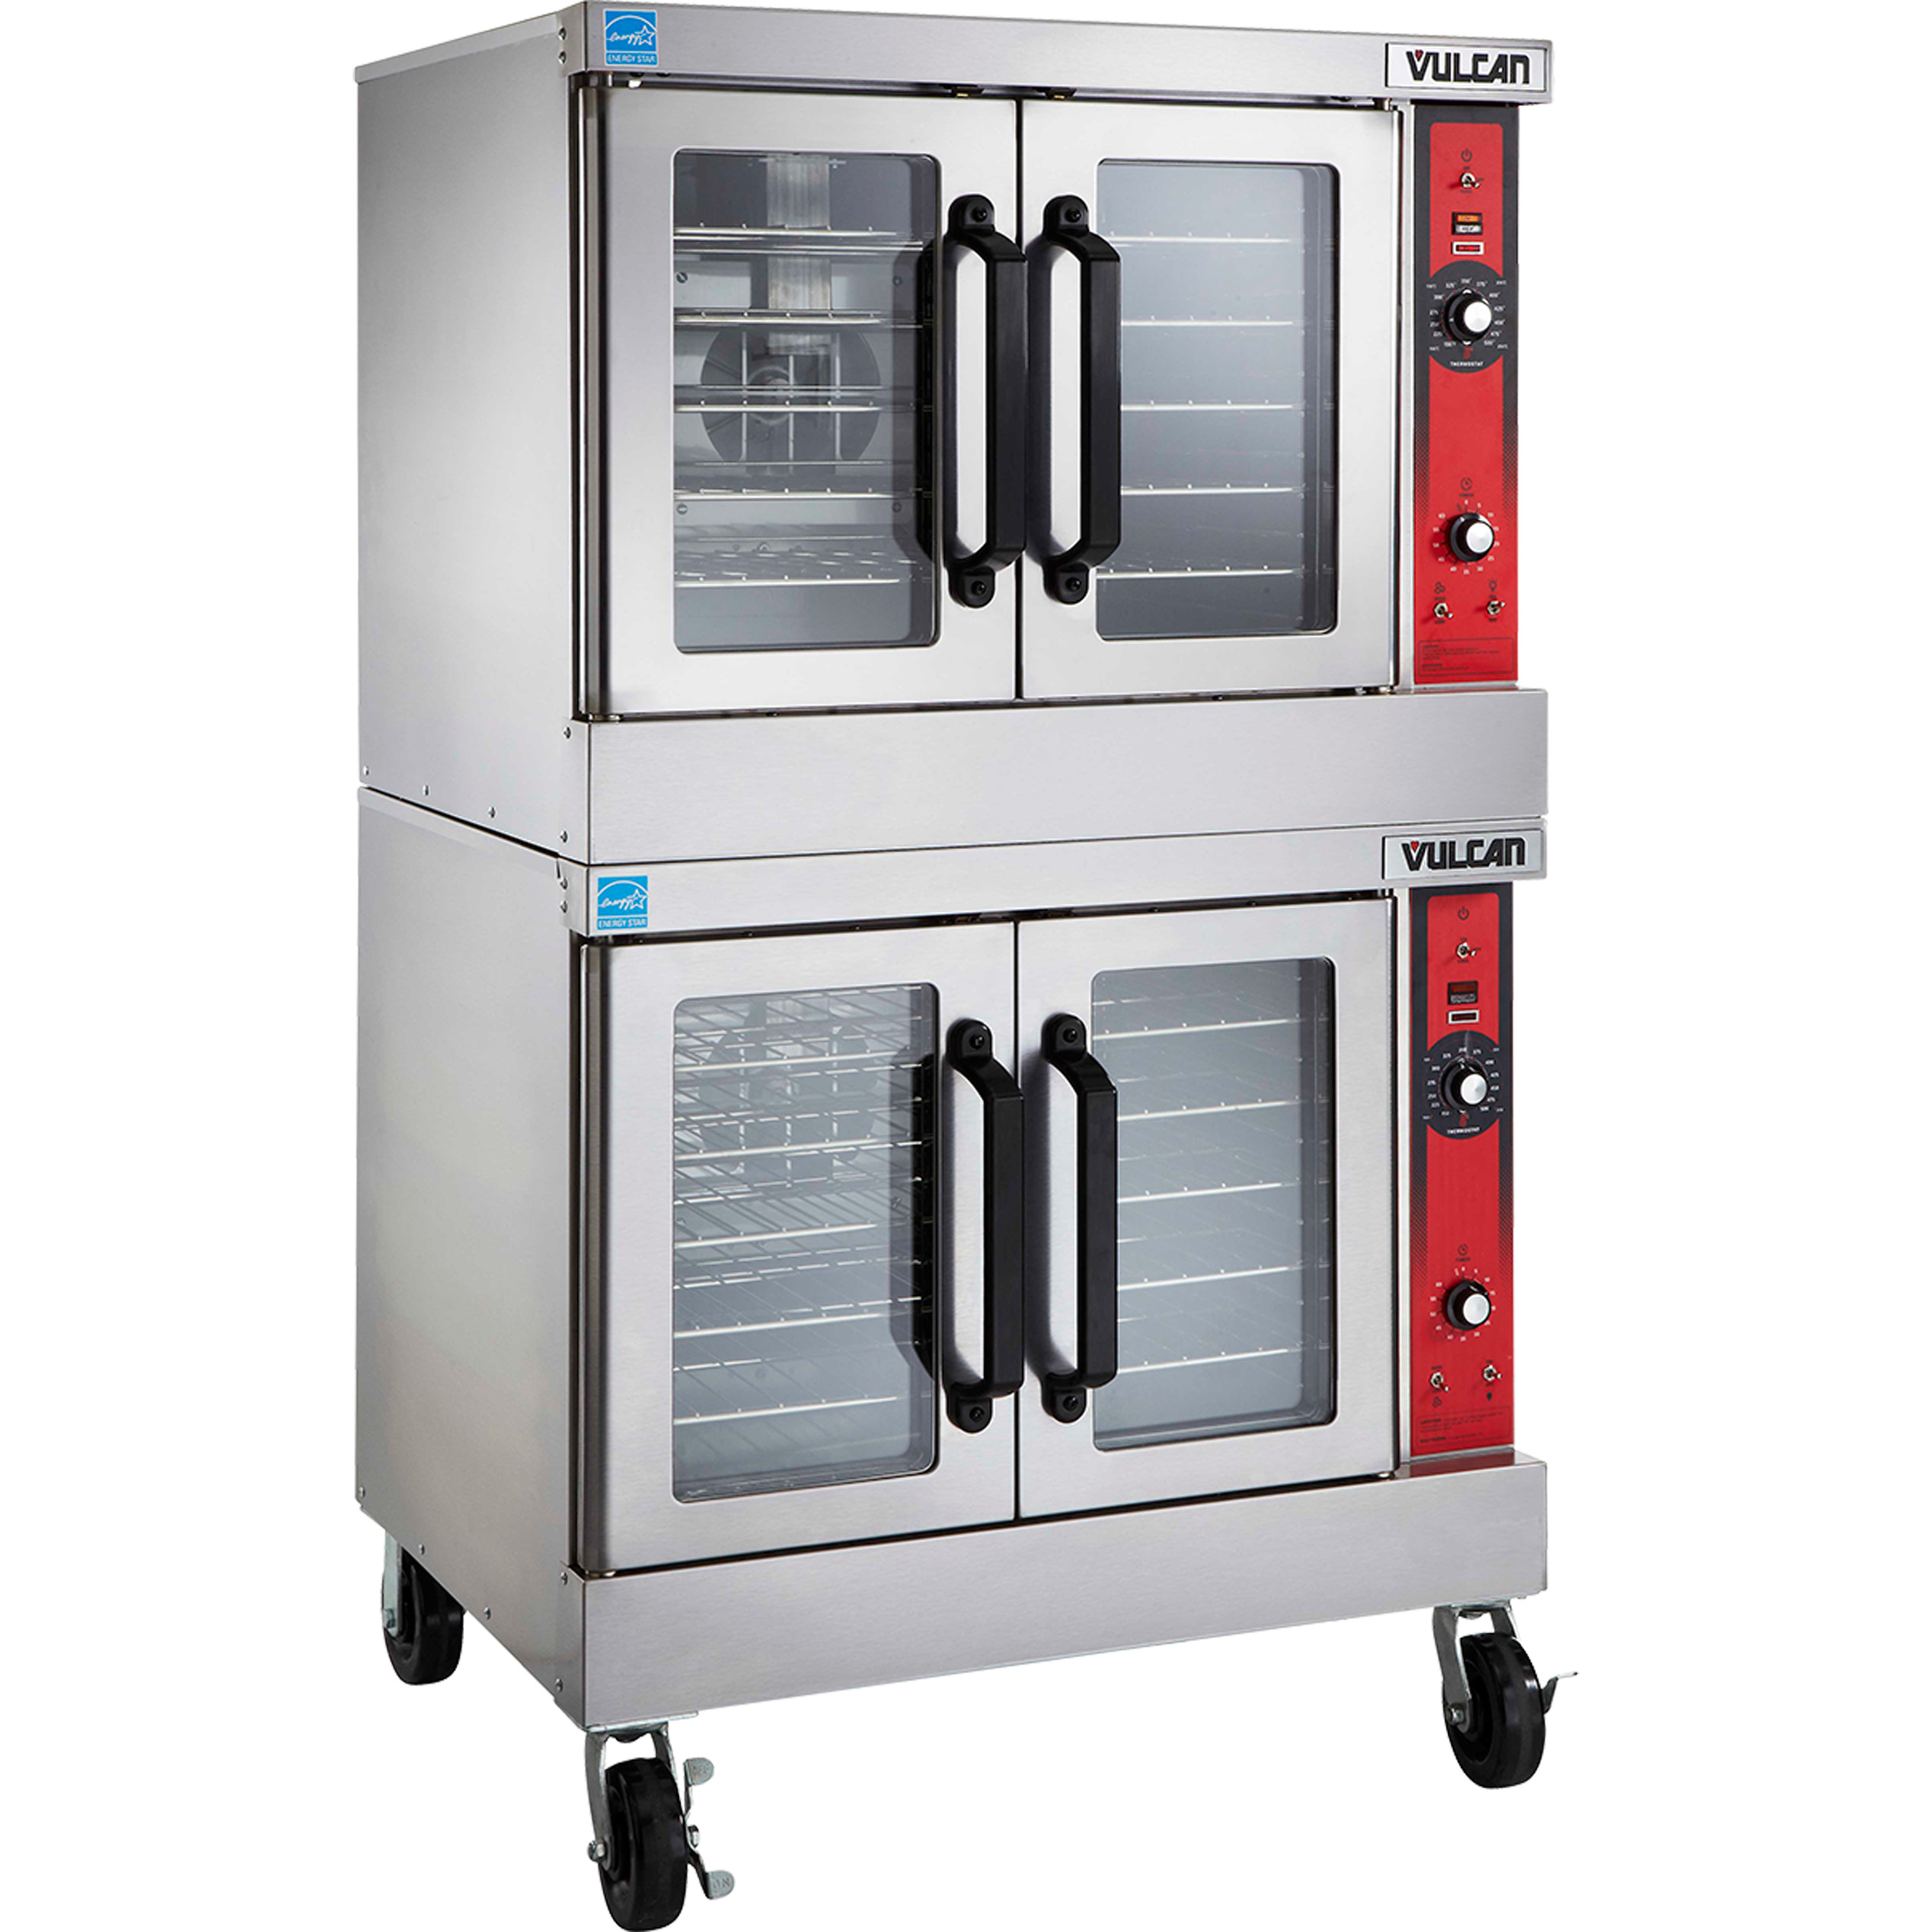 Vulcan VC44EC convection oven, electric